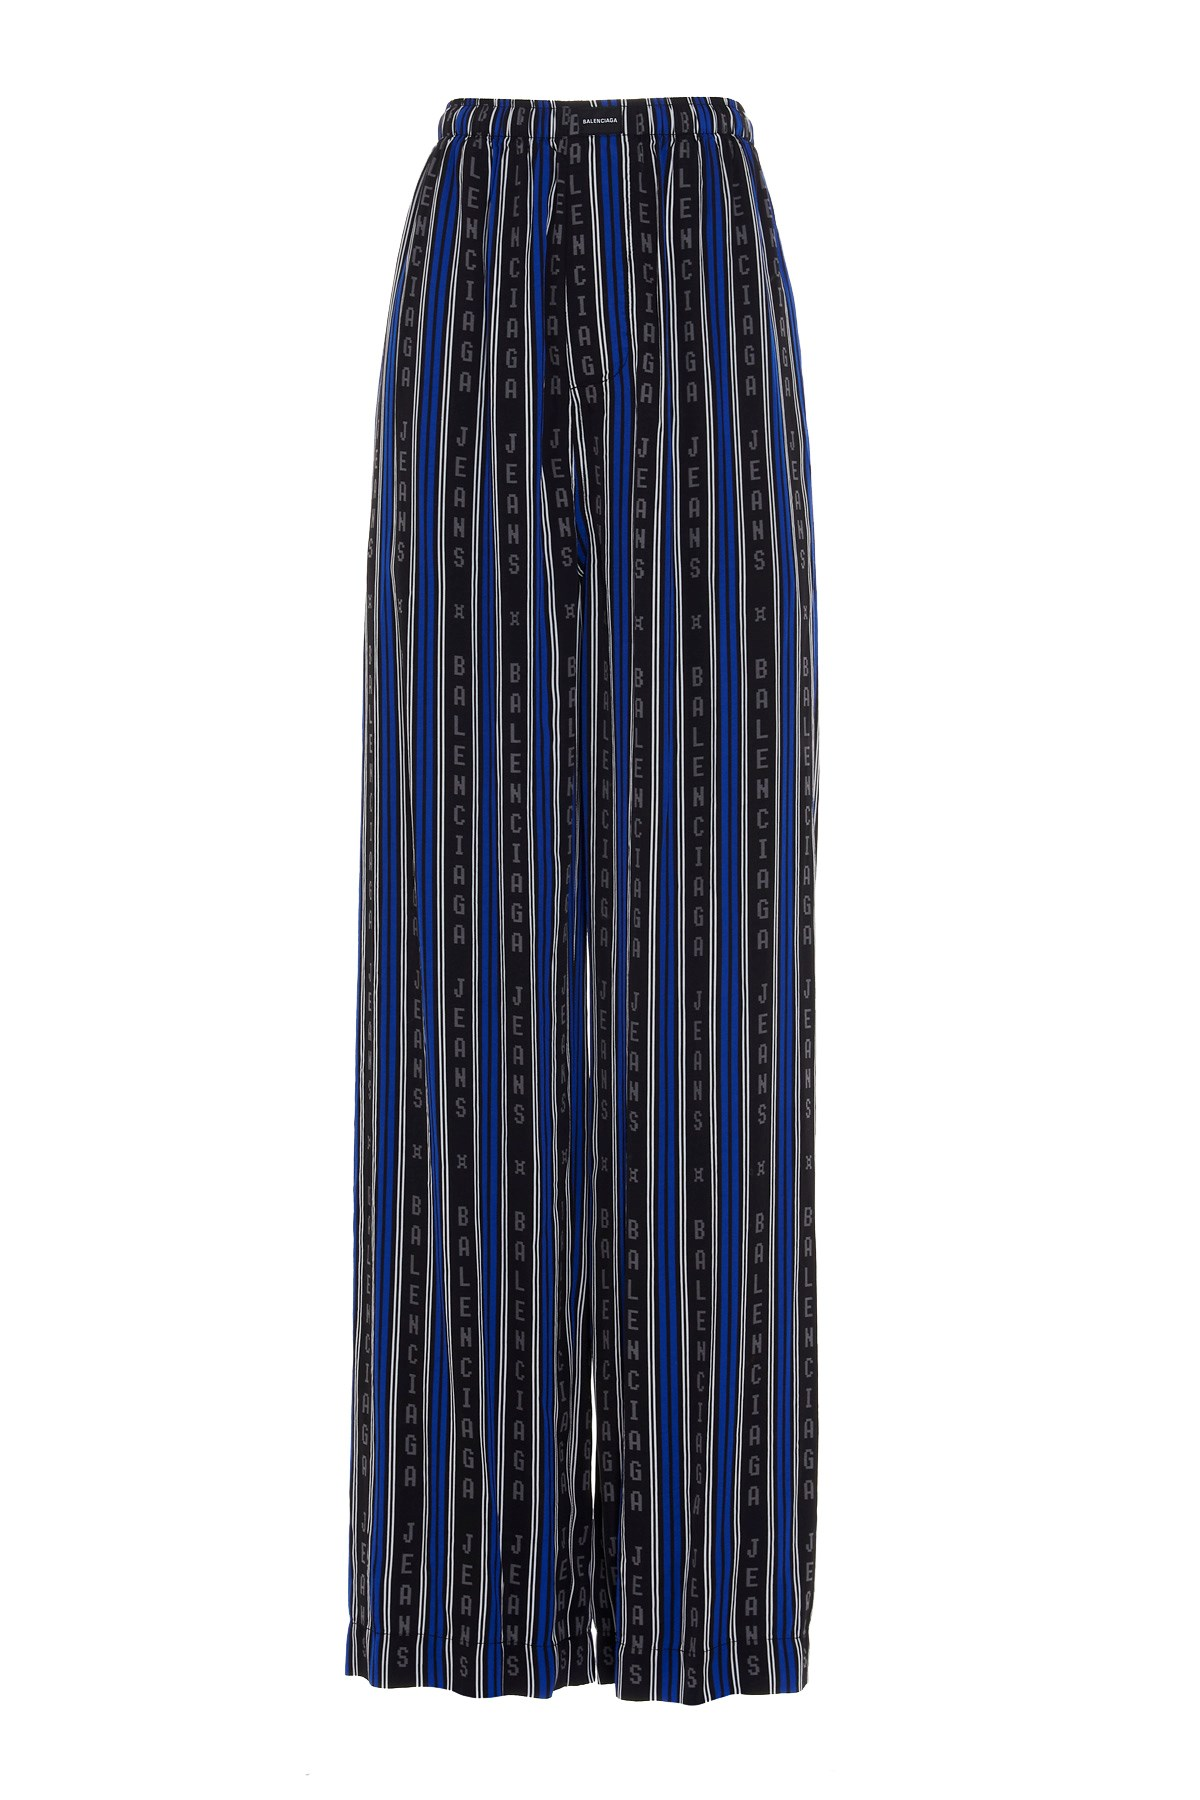 viscose trousers with blue and black vertical stripes  BALENCIAGA |  | 659026-TKL321165